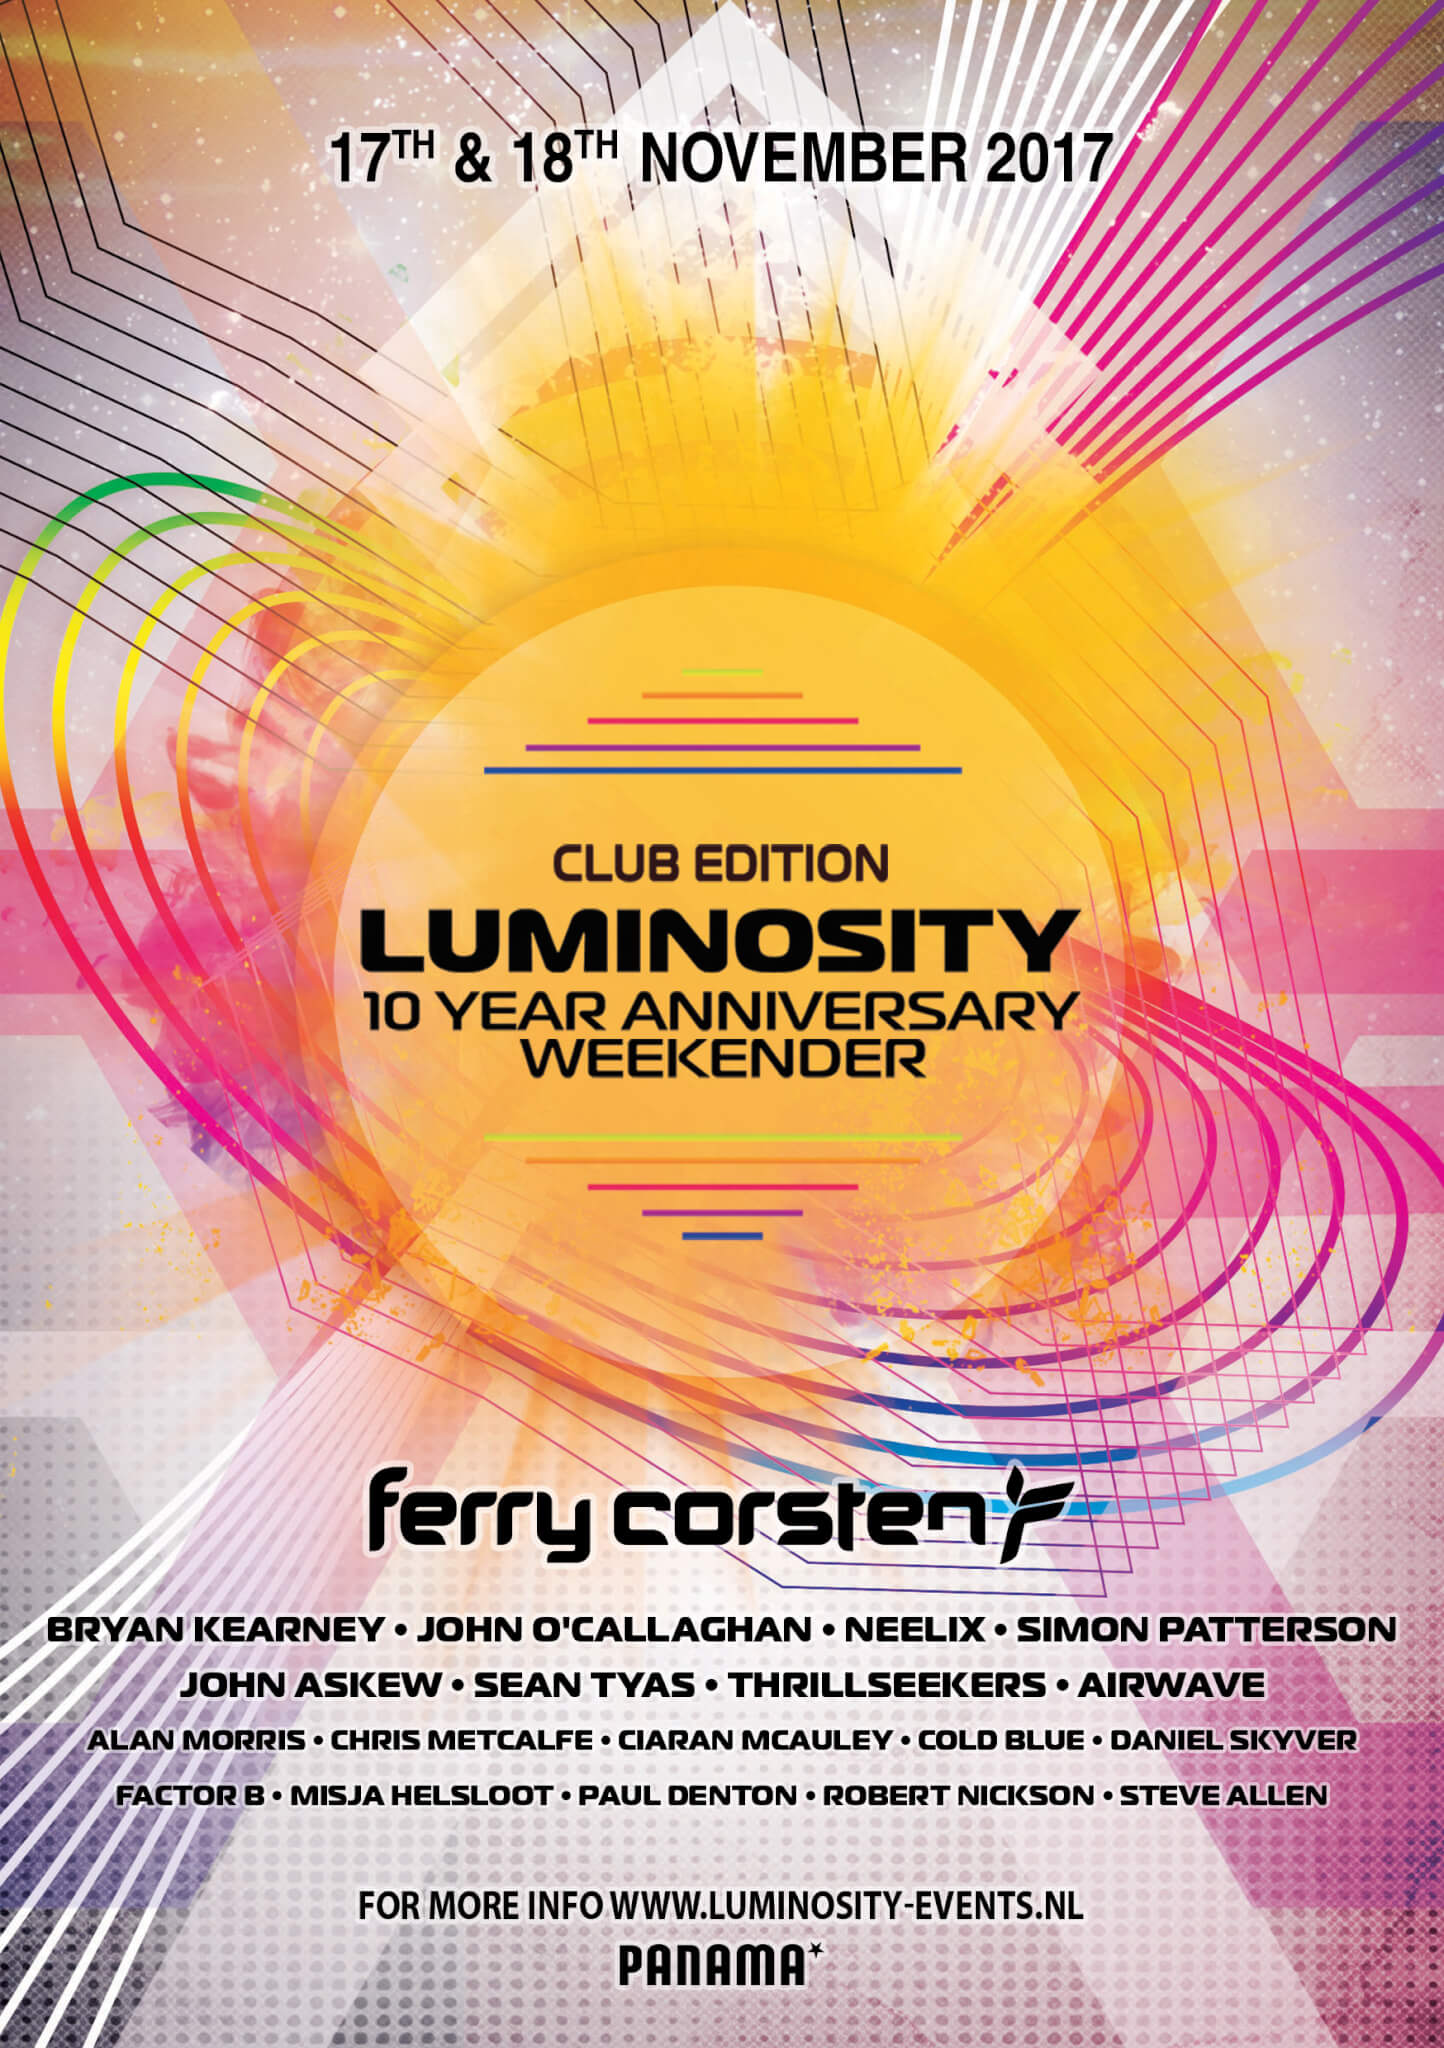 Luminosity Events presents Luminosity 10 Year Anniversary Weekender at Panama Club, Amsterdam, Netherlands on 17th and 18th of November 2017